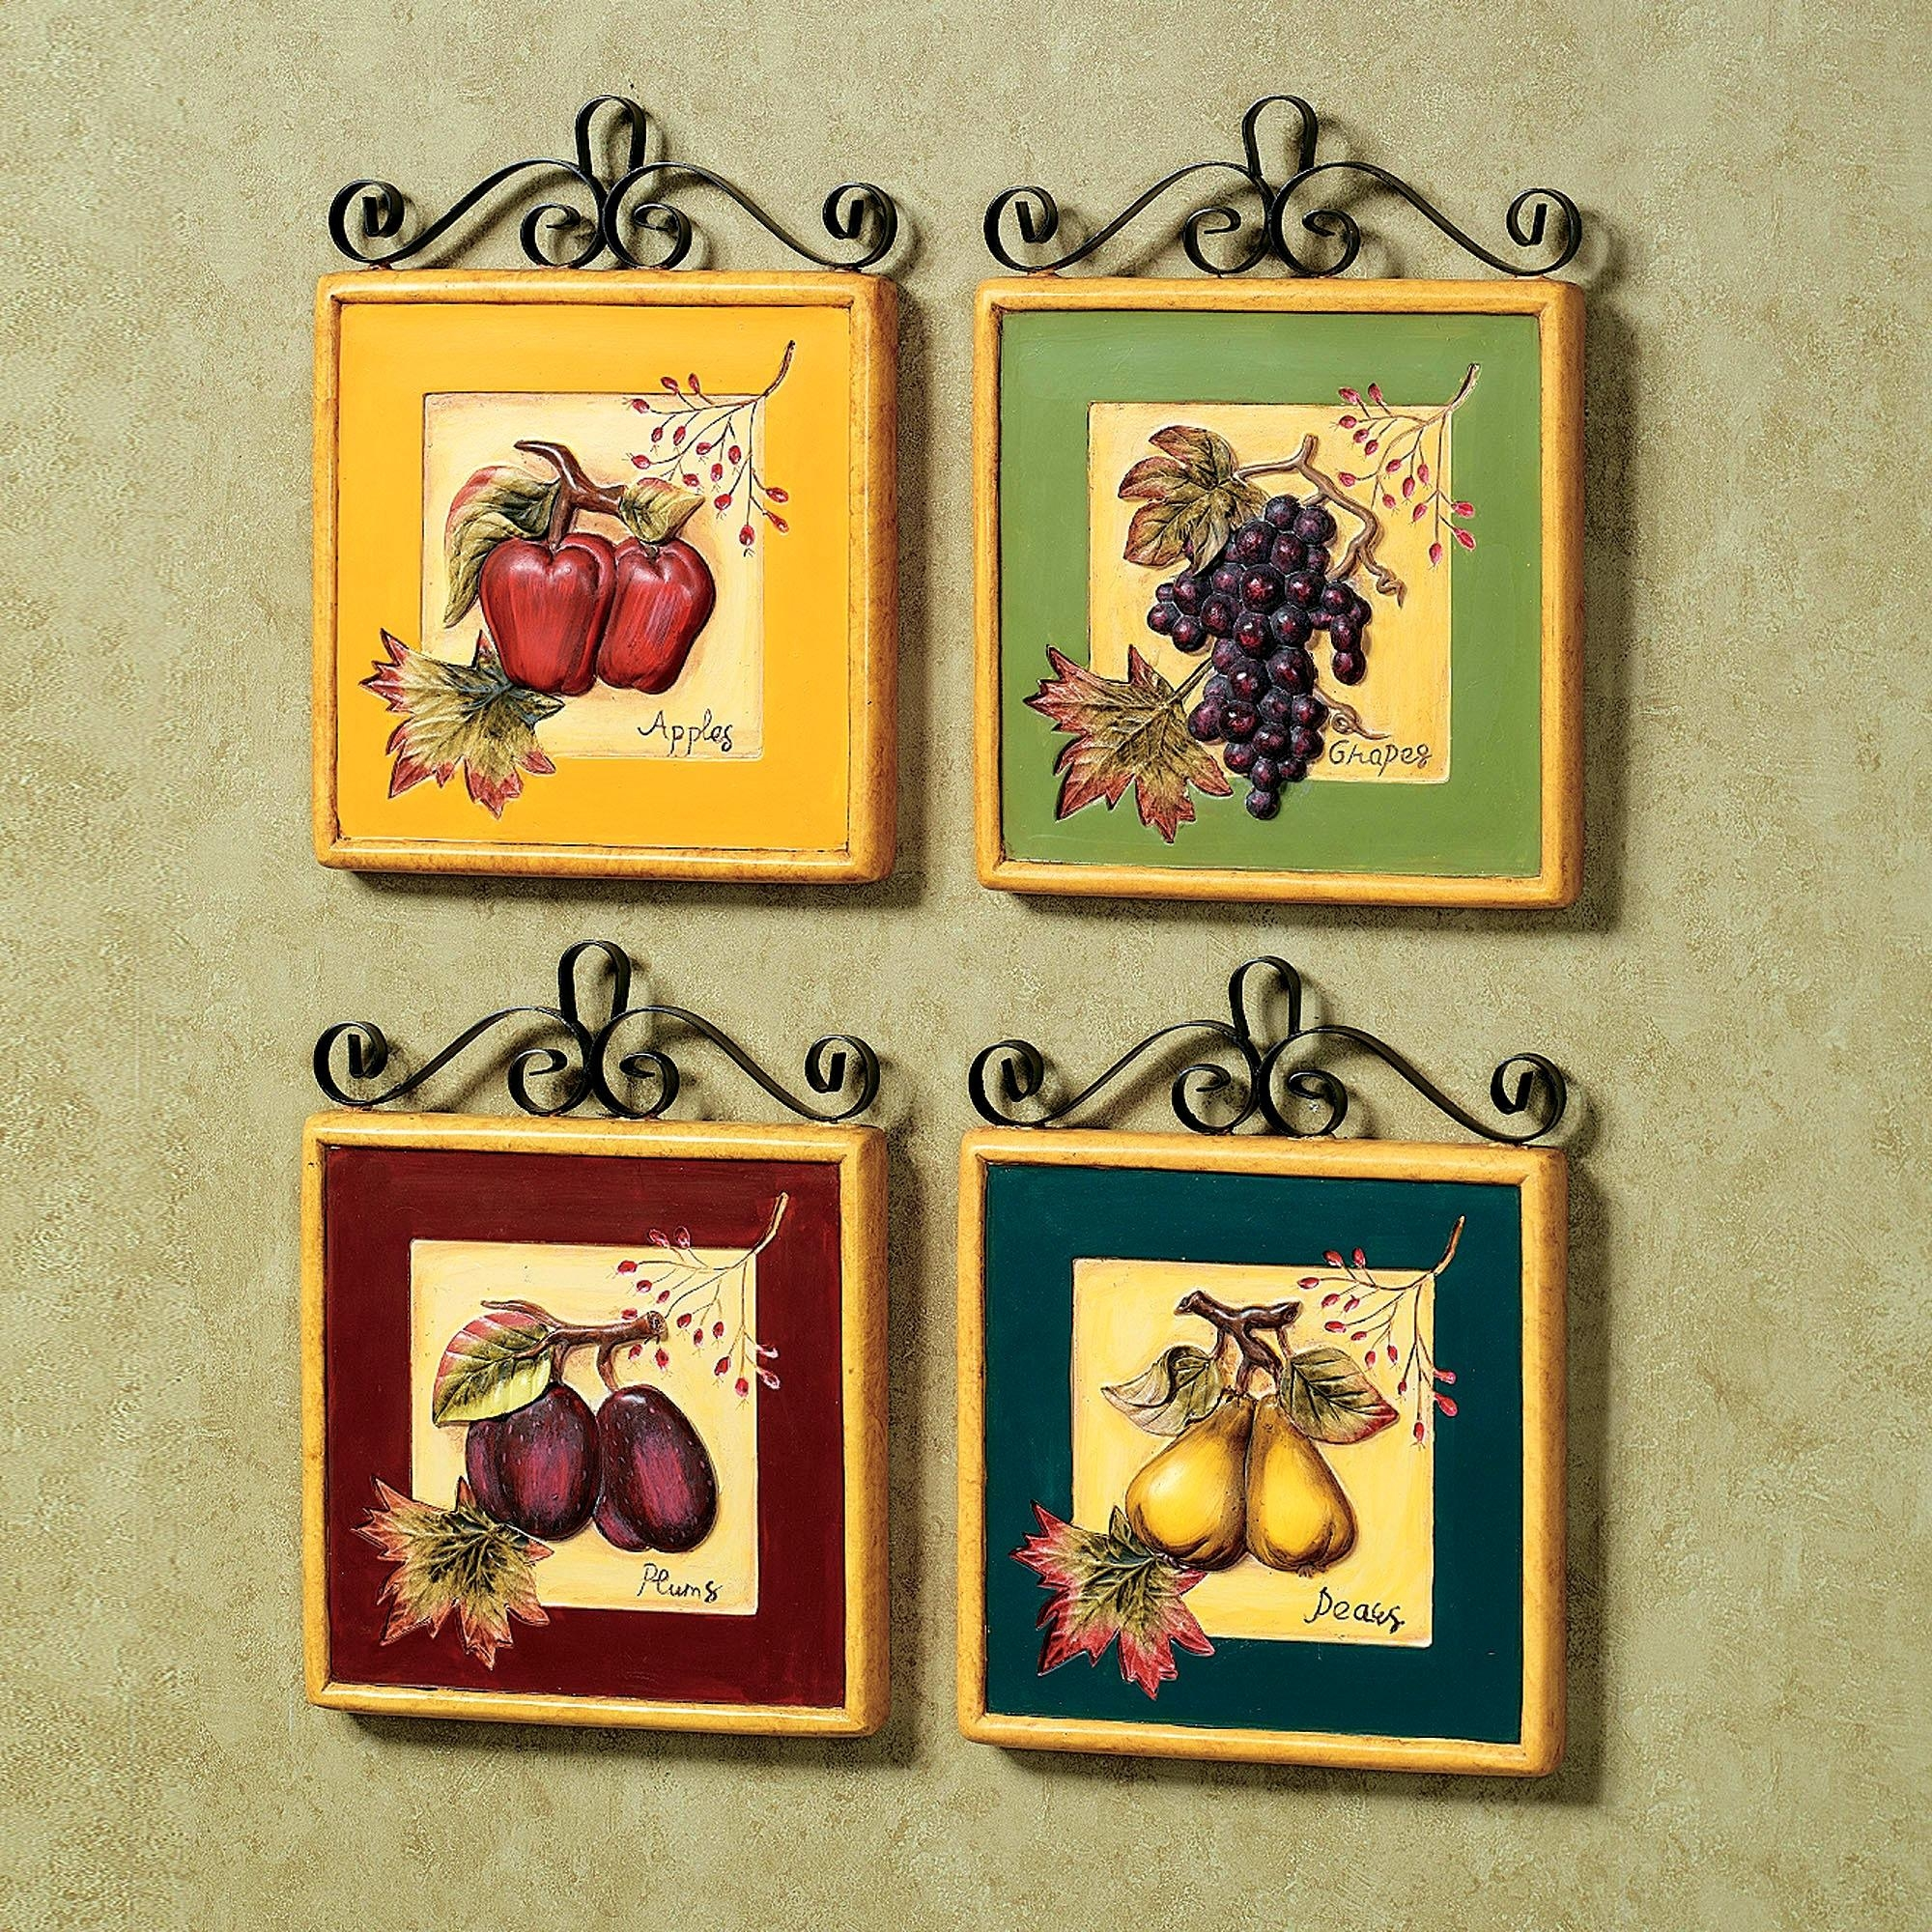 Furniture : Fascinating Fat Italian Chef Kitchen Wall Decor Inside Italian Plaques Wall Art (Image 5 of 20)